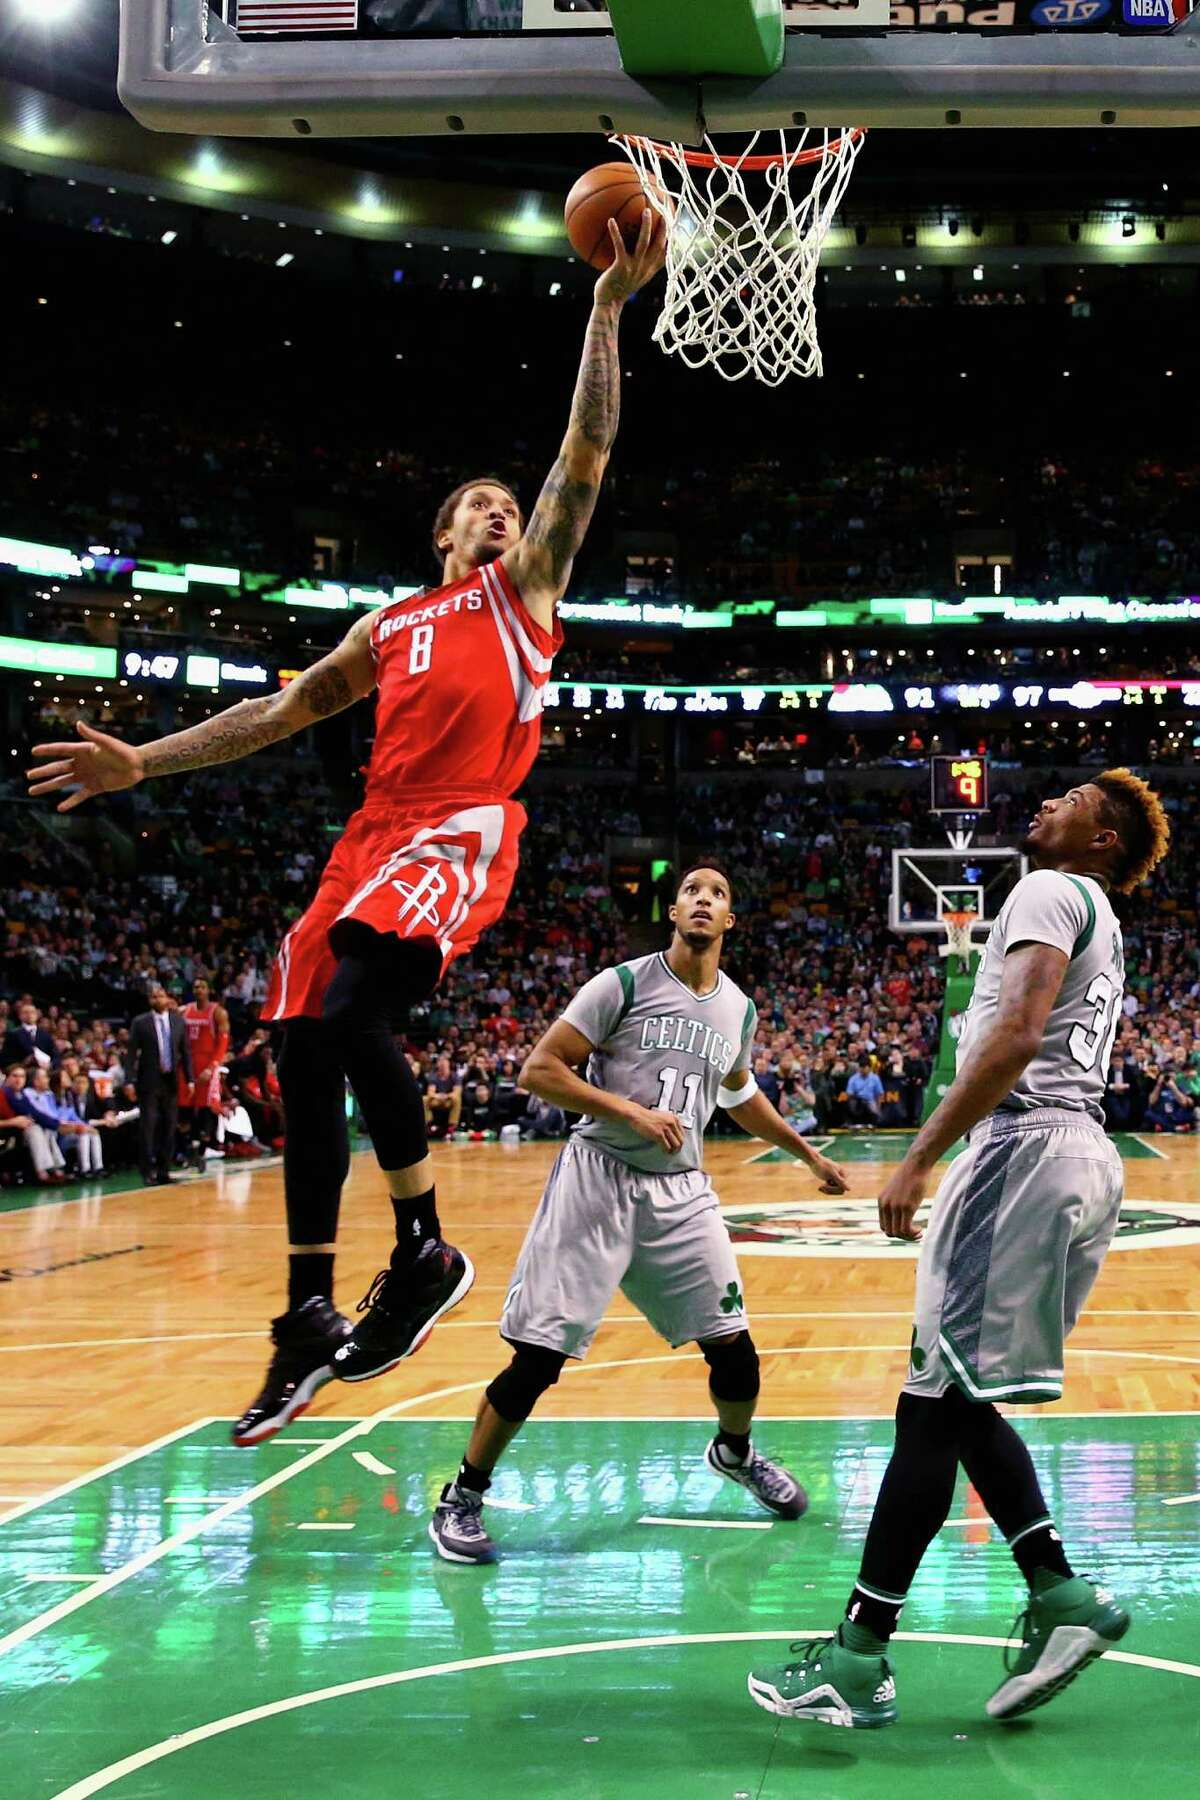 BOSTON, MA - MARCH 11: Michael Beasley #8 of the Houston Rockets takes a shot over Marcus Smart #36 and Evan Turner #11 of the Boston Celtics during the second half at TD Garden on March 11, 2016 in Boston, Massachusetts. The Rockets defeat the Celtics 102-98. NOTE TO USER: User expressly acknowledges and agrees that, by downloading and/or using this photograph, user is consenting to the terms and conditions of the Getty Images License Agreement.